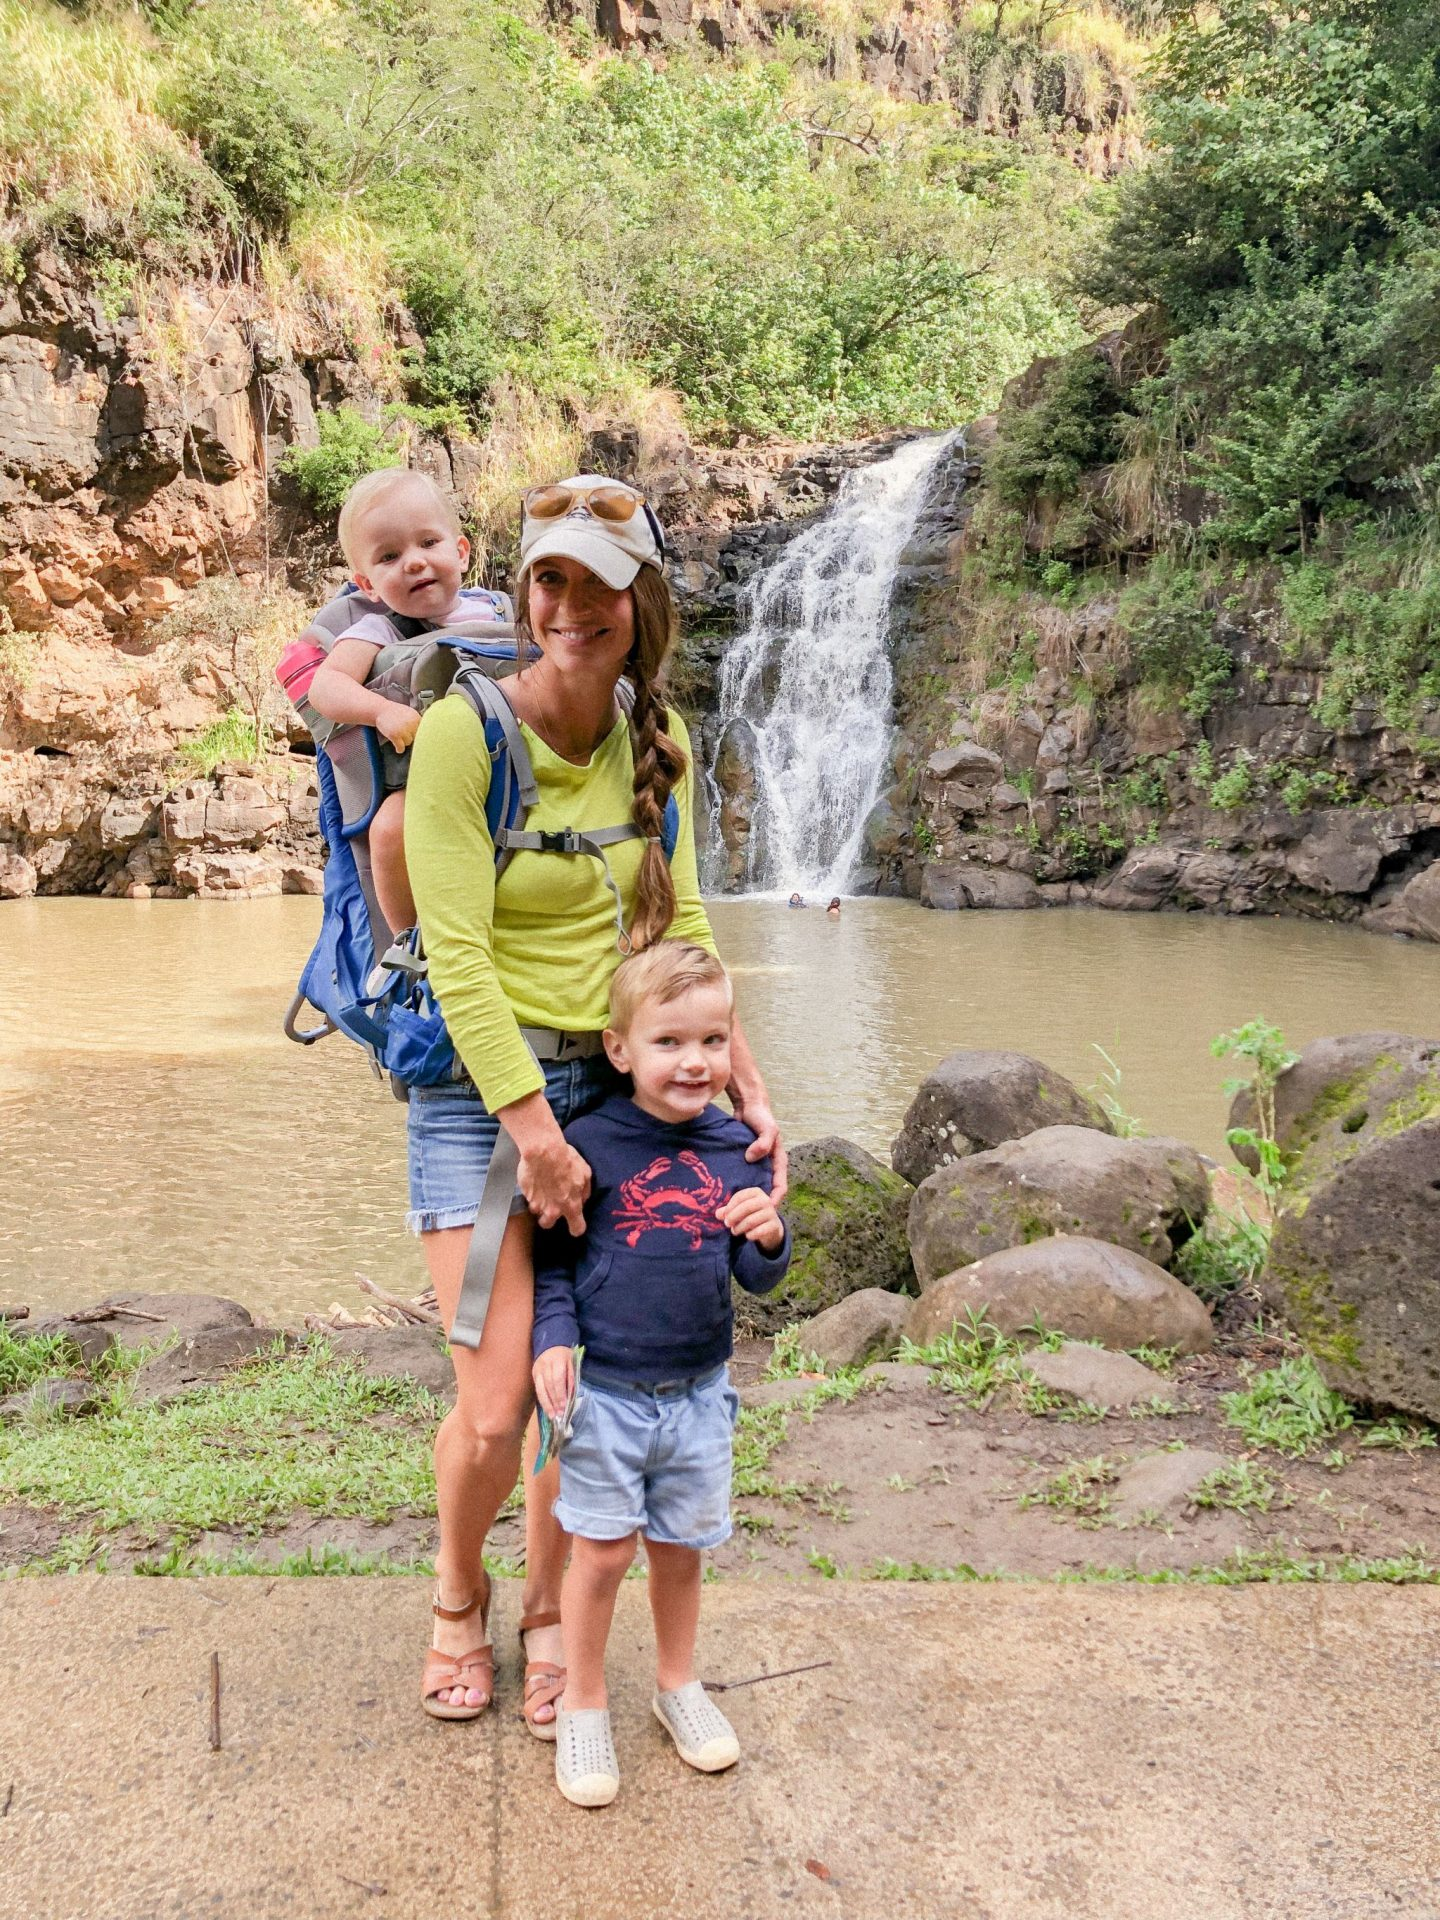 Hiking in Hawaii: Waimea Valley Trail